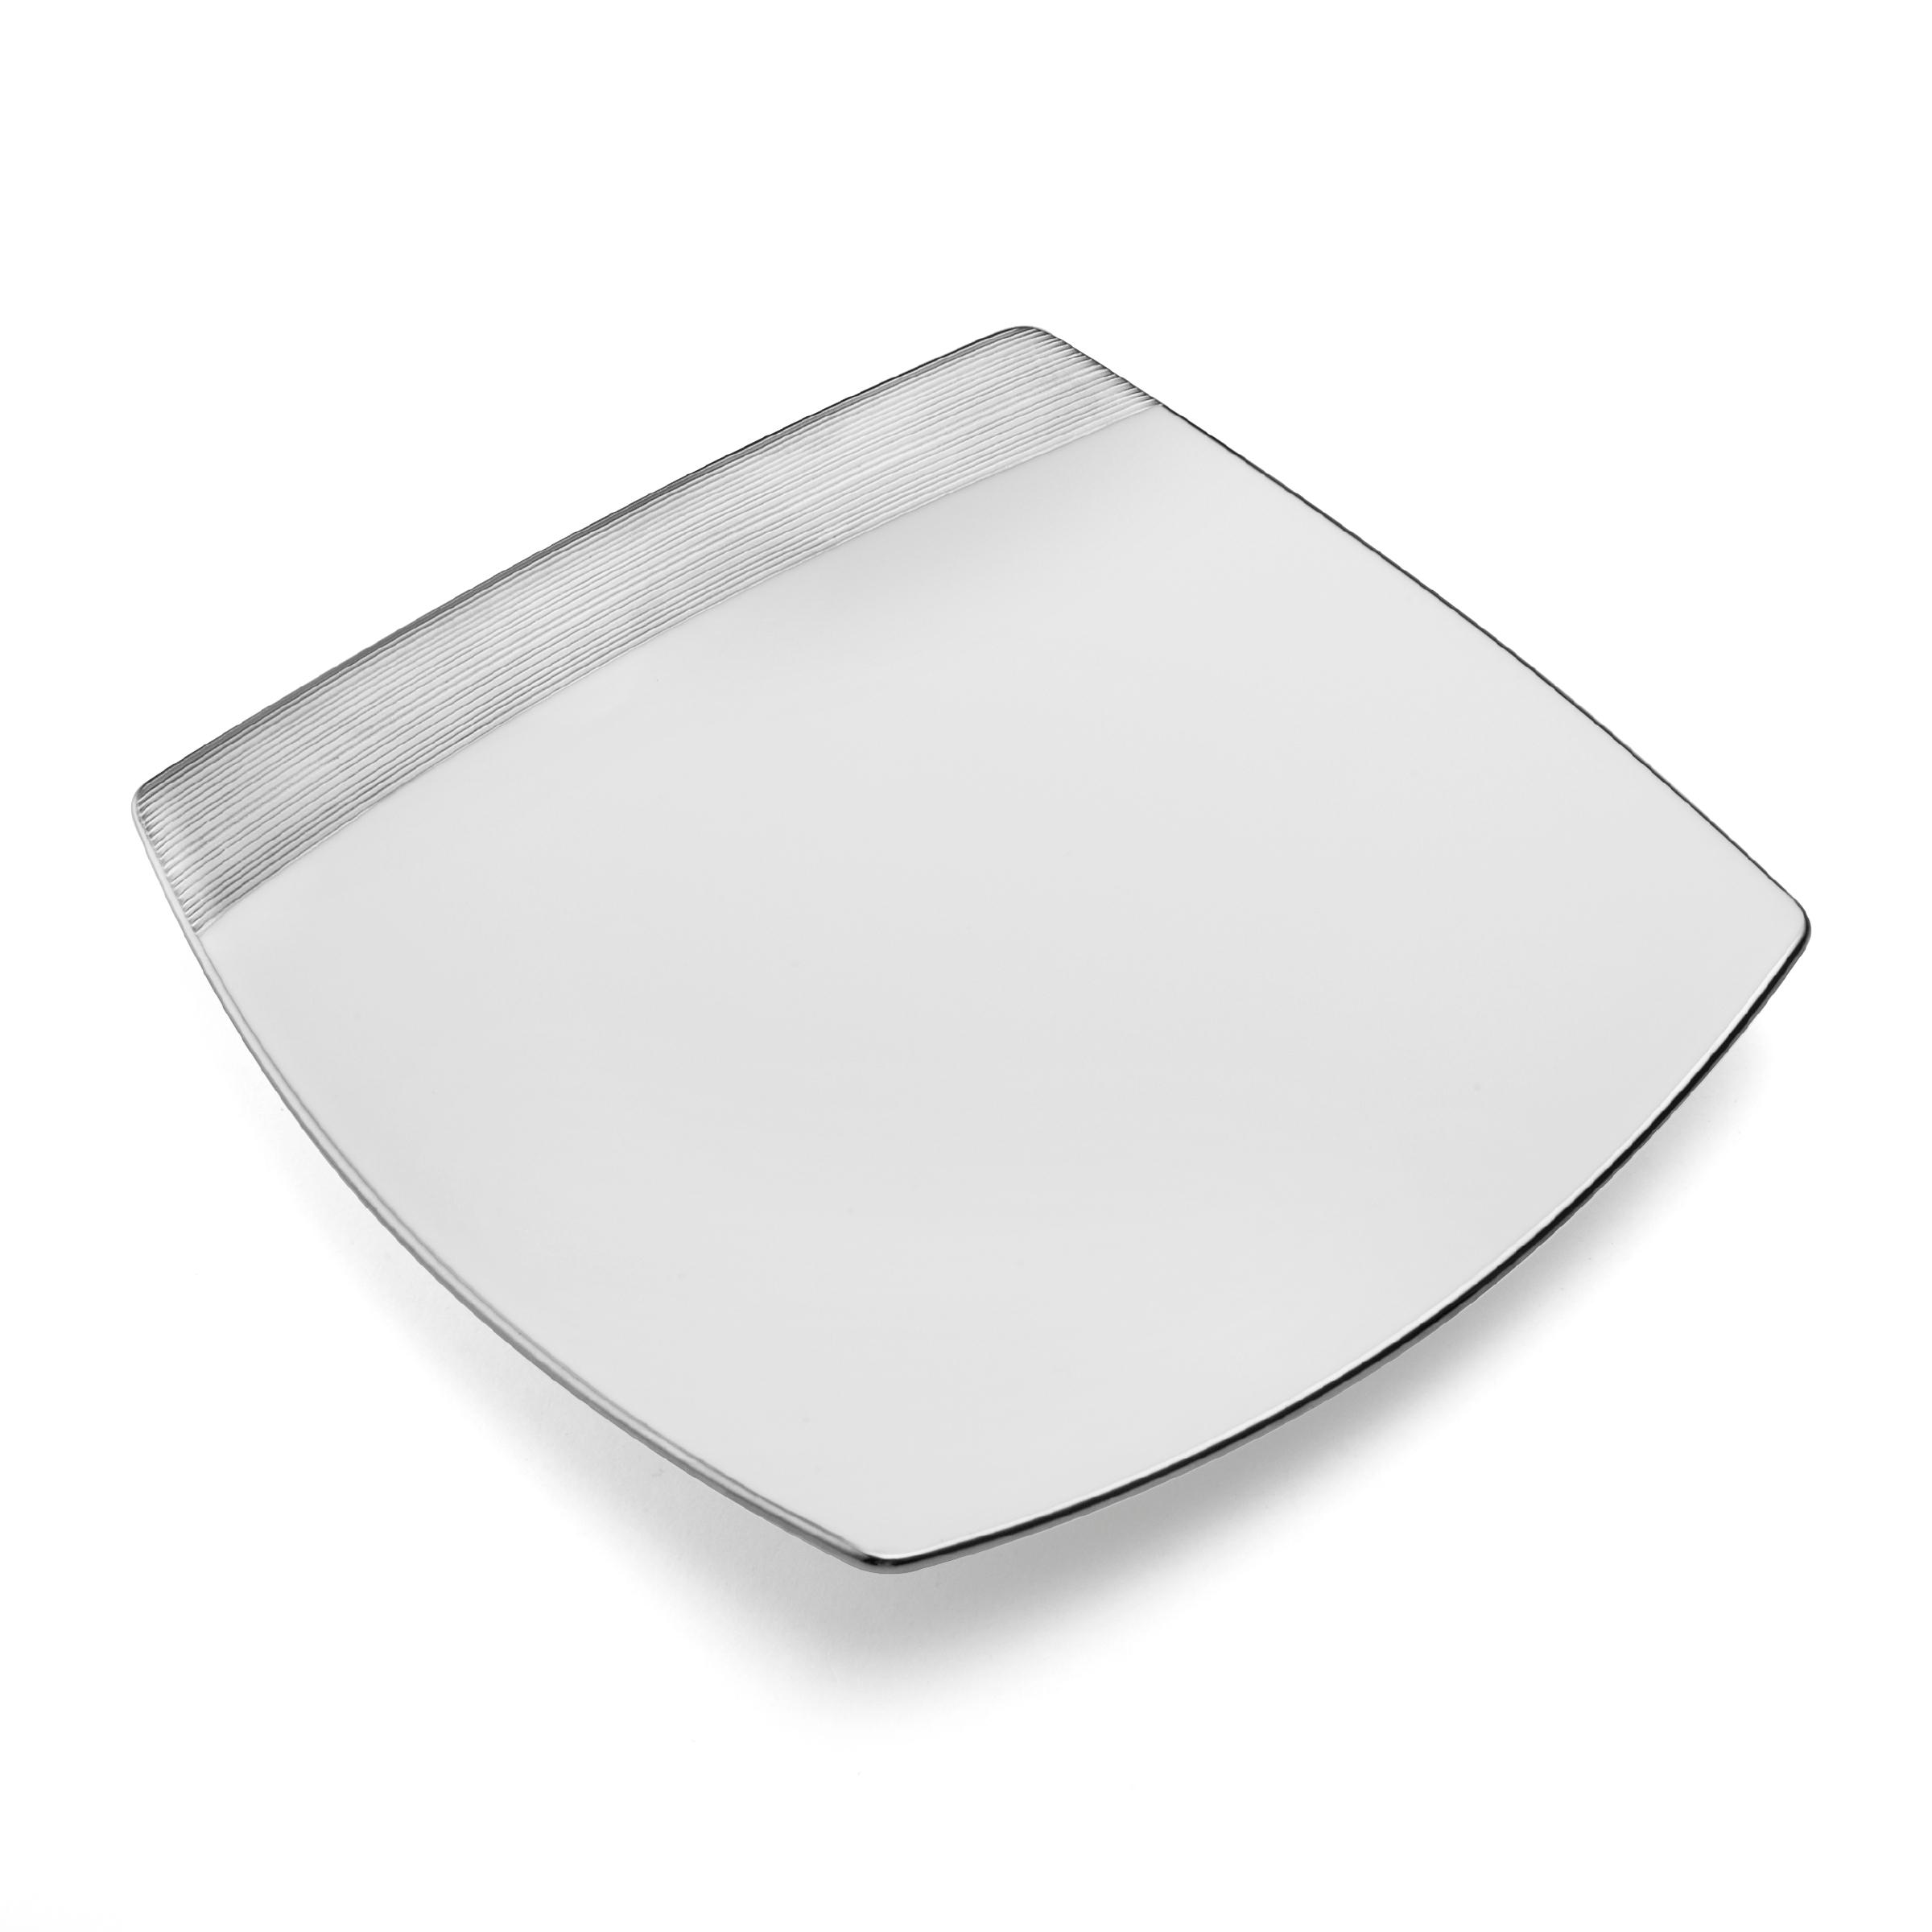 View larger  sc 1 st  Amazon.com & Amazon.com | Mikasa Ridge Square 16-Piece Dinnerware Set Service ...